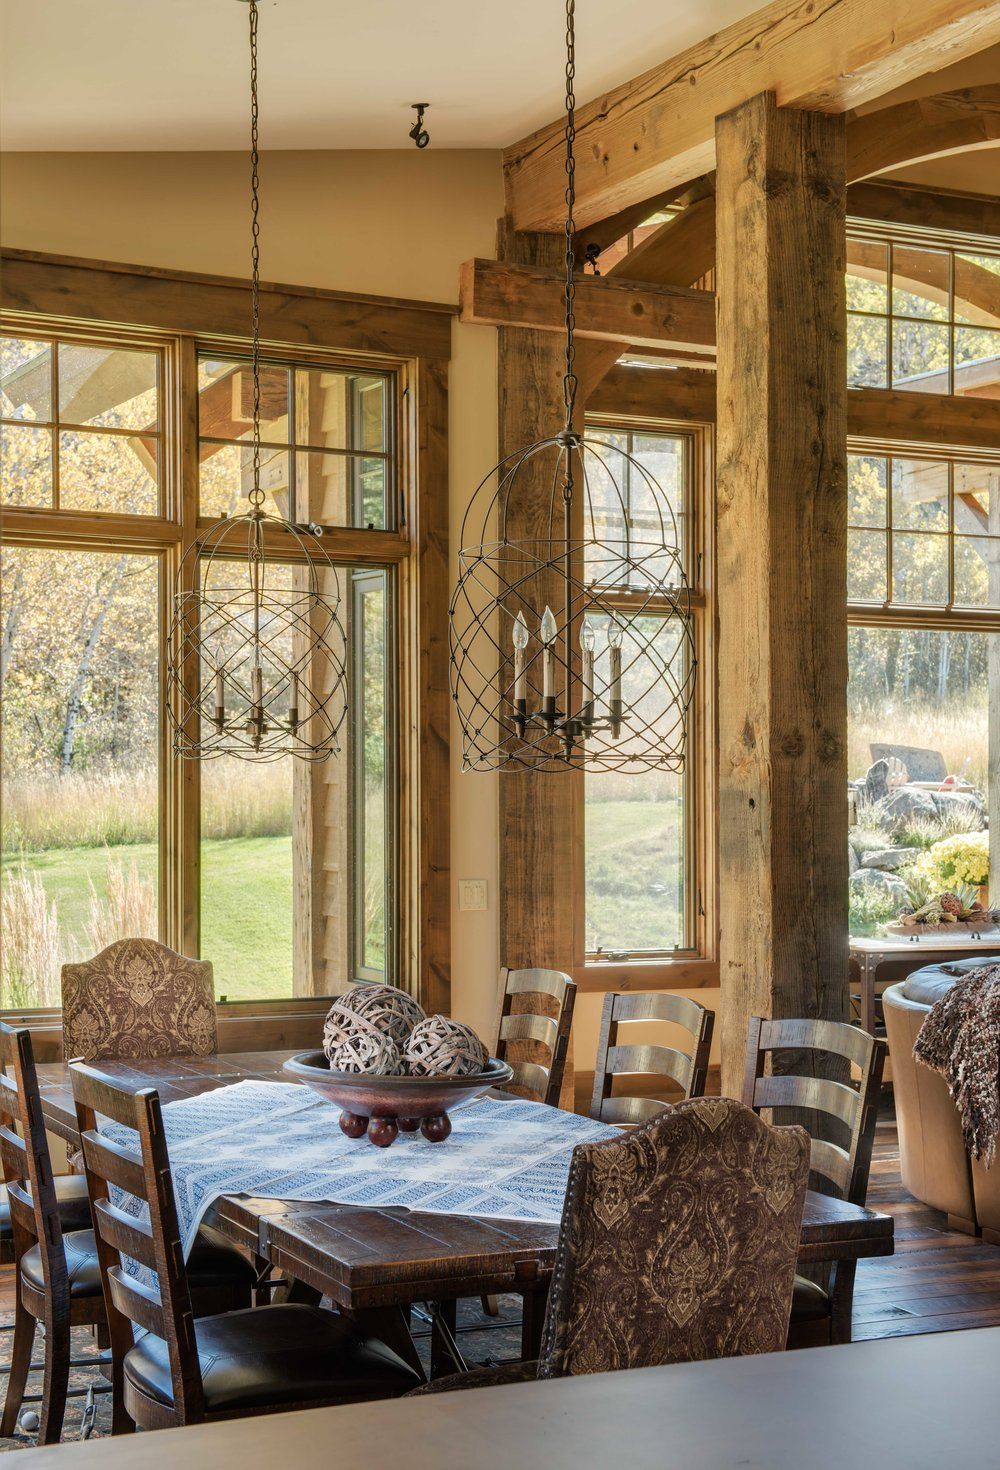 The combination of the strong wood beams and the distressed iron hanging lights are gorgeous in this rustic dining room. Architect -  Reid Smith Architects  Builder -  Schlauch Bottcher Construction